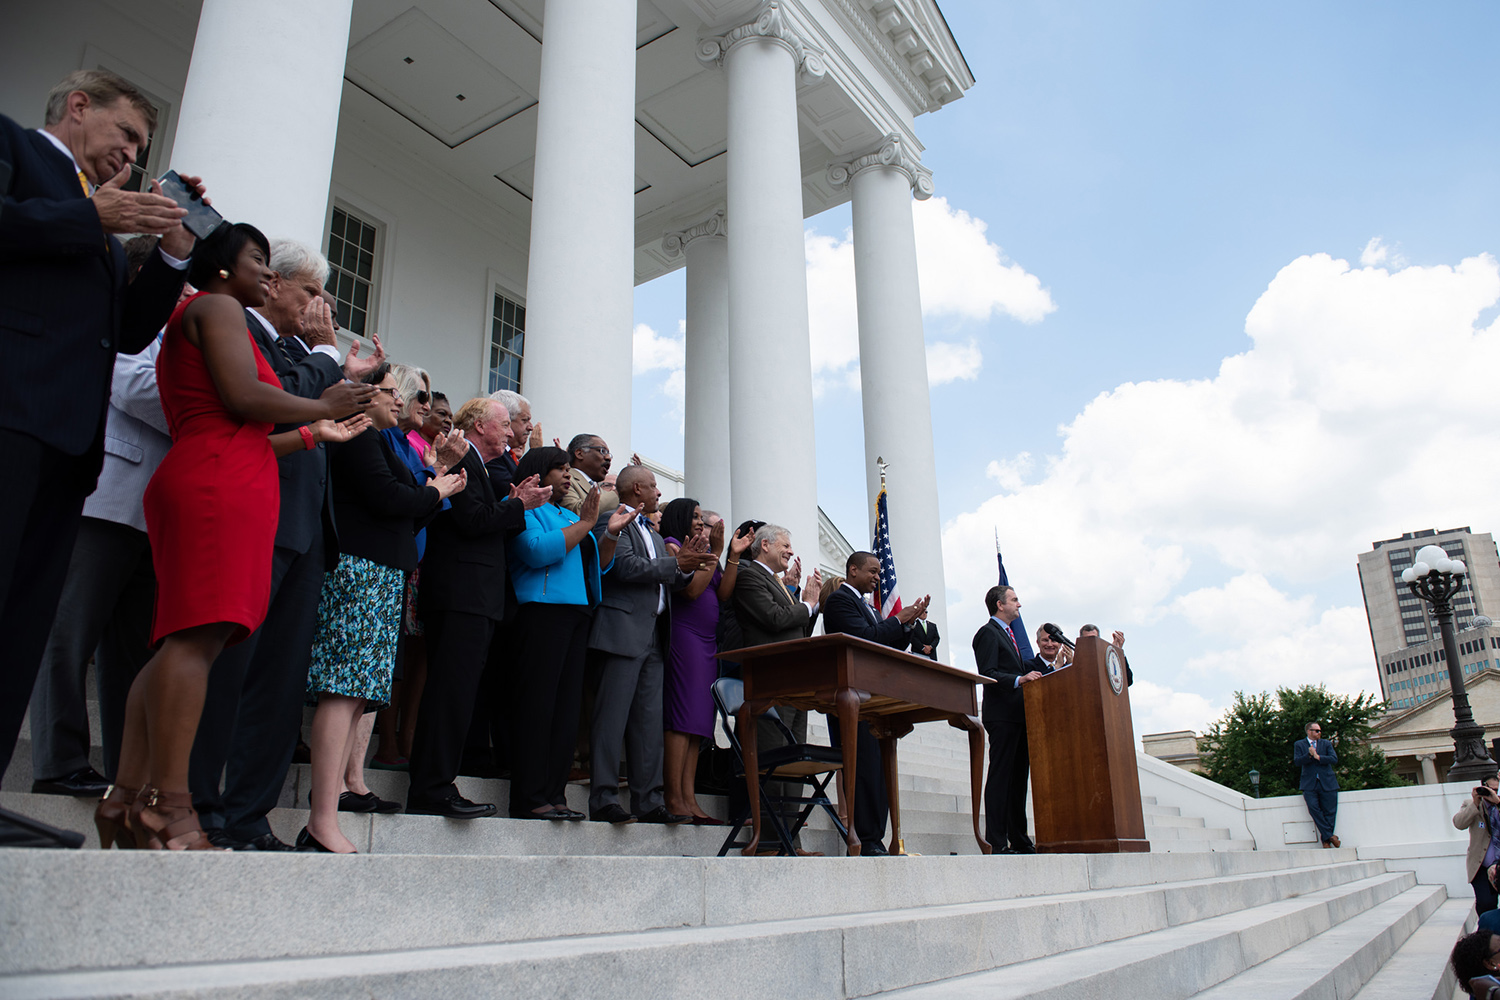 Progressive Energy Policy Stance - In a bipartisan fashion, Virginia's legislature passed the Grid Transformation and Security Act in 2018, which deems 5,000 MW of solar and wind energy generation to be in the public interest.